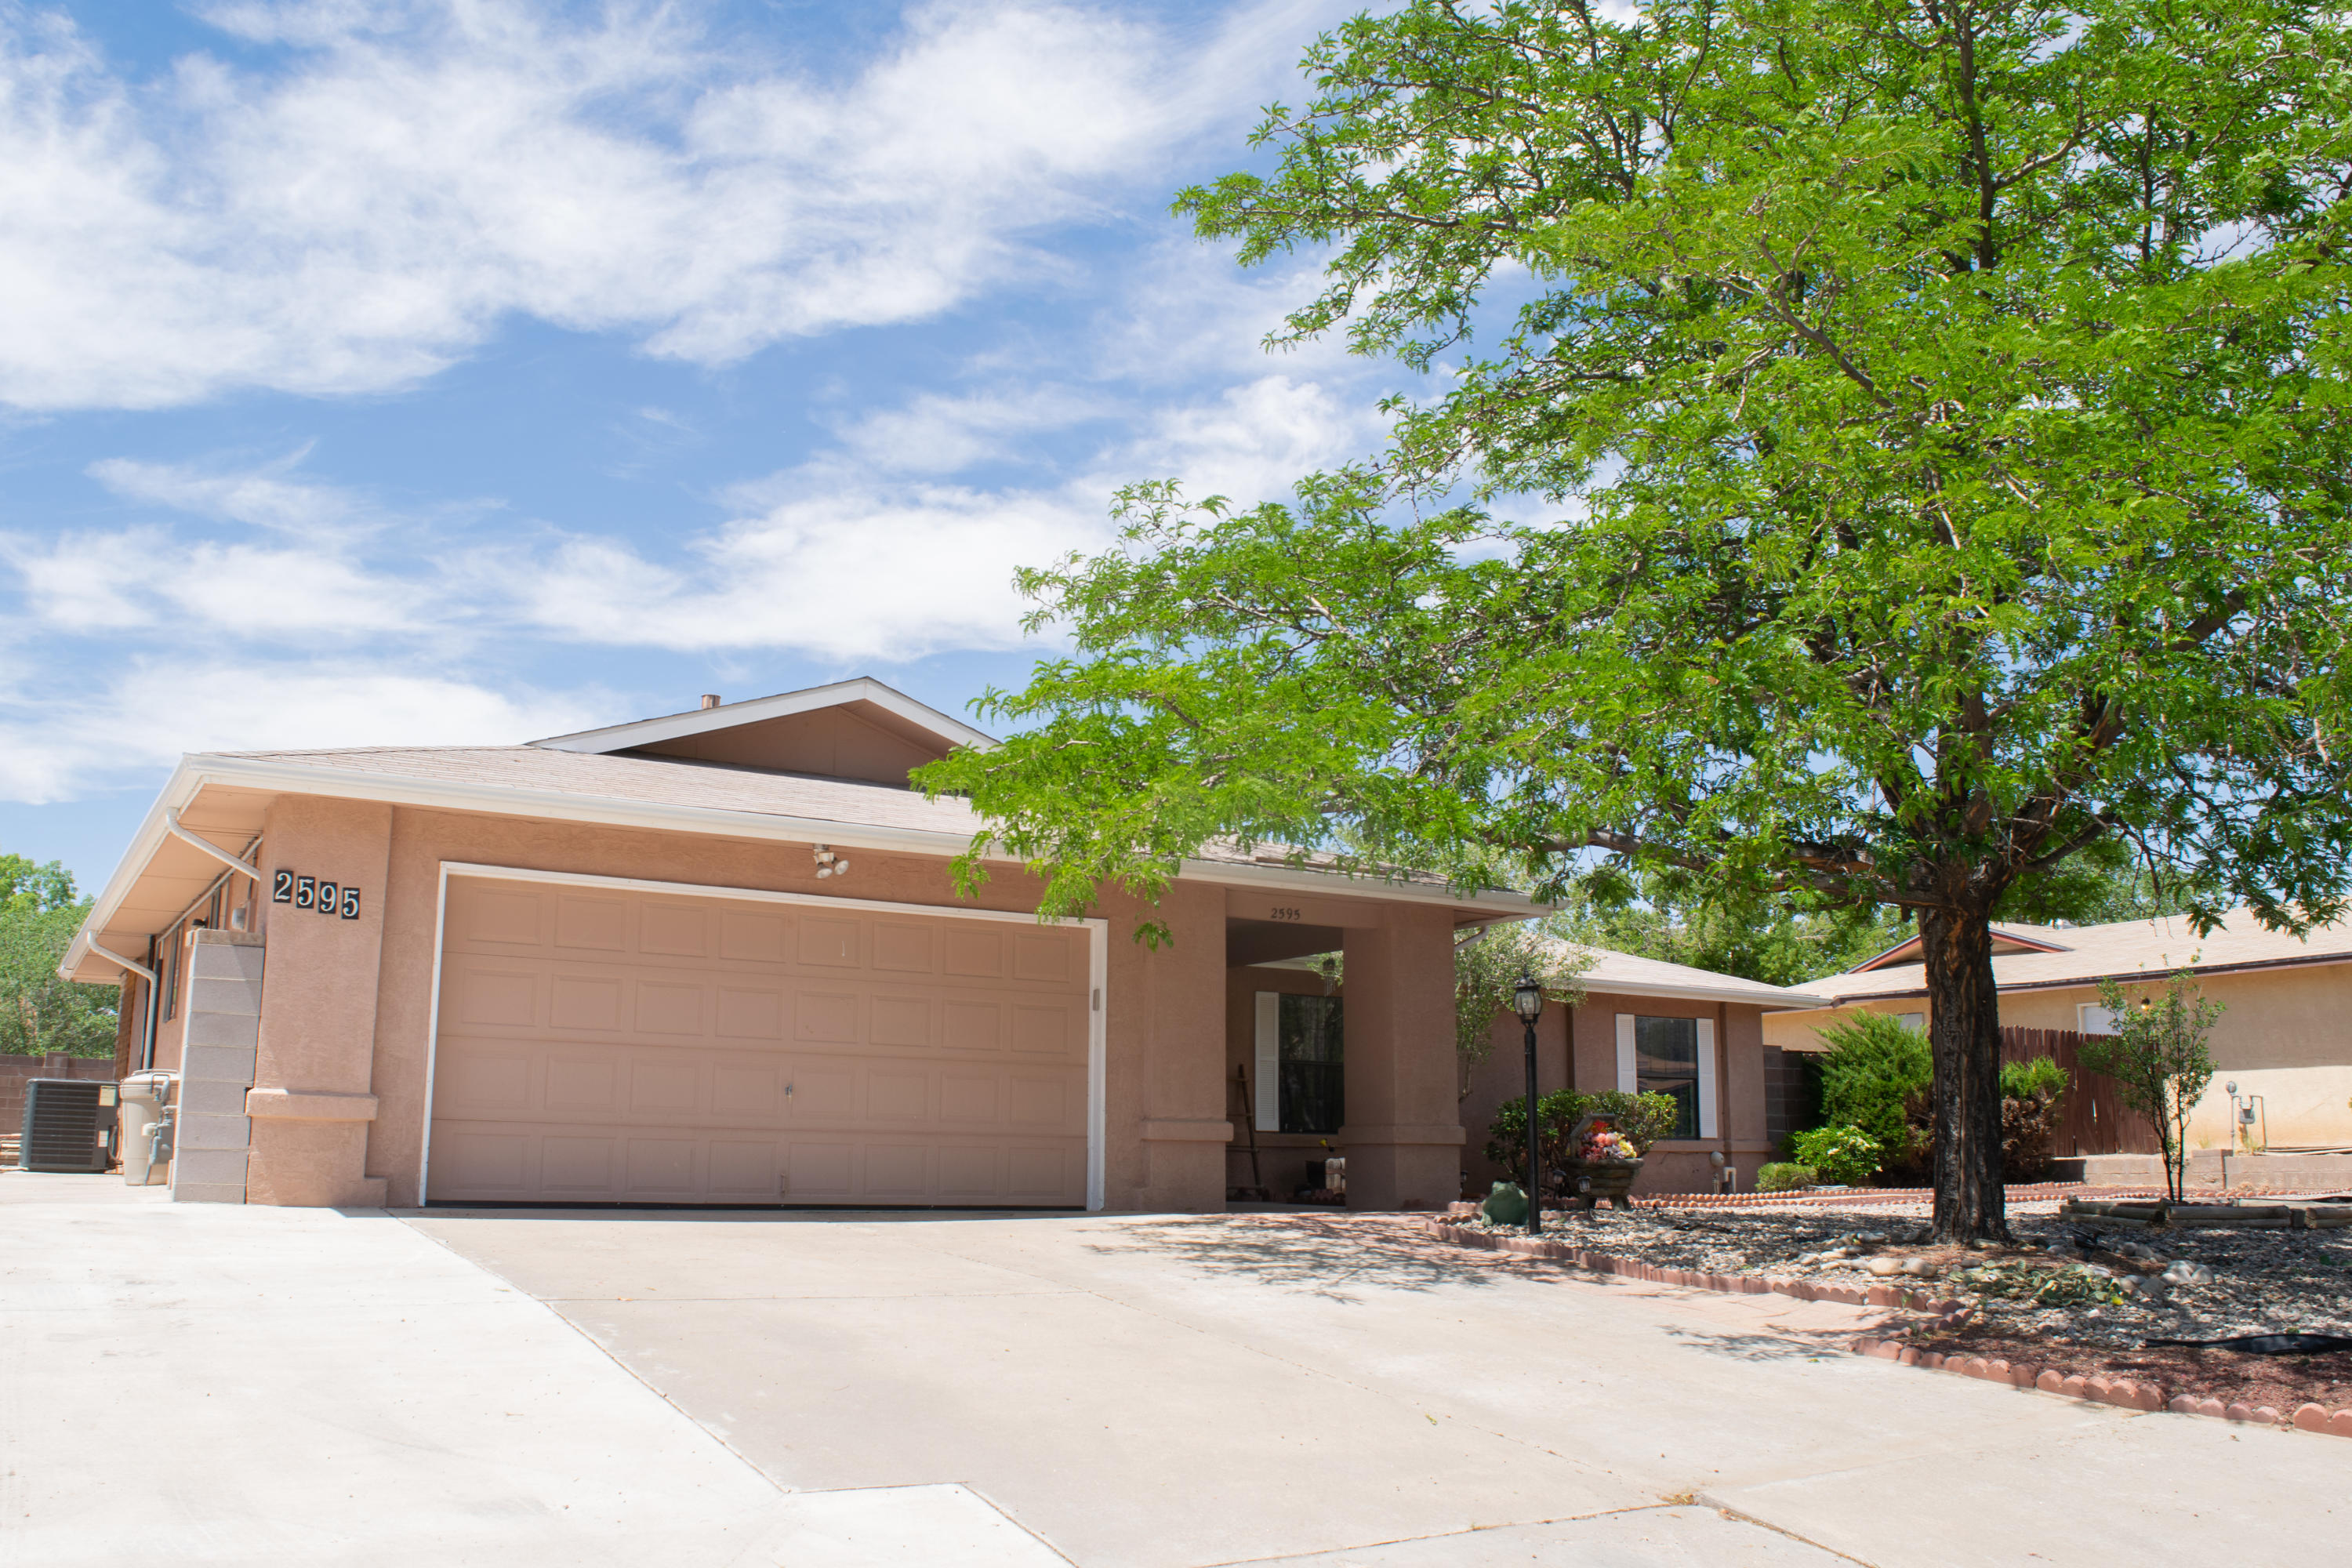 Come and see this AMAZING single-story home located in the perfect Rio Rancho neighborhood, close to Intel. IT WILL GO FAST!  This property features many NEW upgrades;  Kitchen, Master BR/Bath, Guest Bath, and fresh paint.  BRAND NEW Refrigerated Air/Furnace, Hot Water Heater, UPGRADED plumbing, and a newer shingle roof.  OVERSIZED 2 car garage with RV parking on an OVERSIZED lot, with backyard access.  Zero Scaped front and back yard with BRAND NEW inground pool.